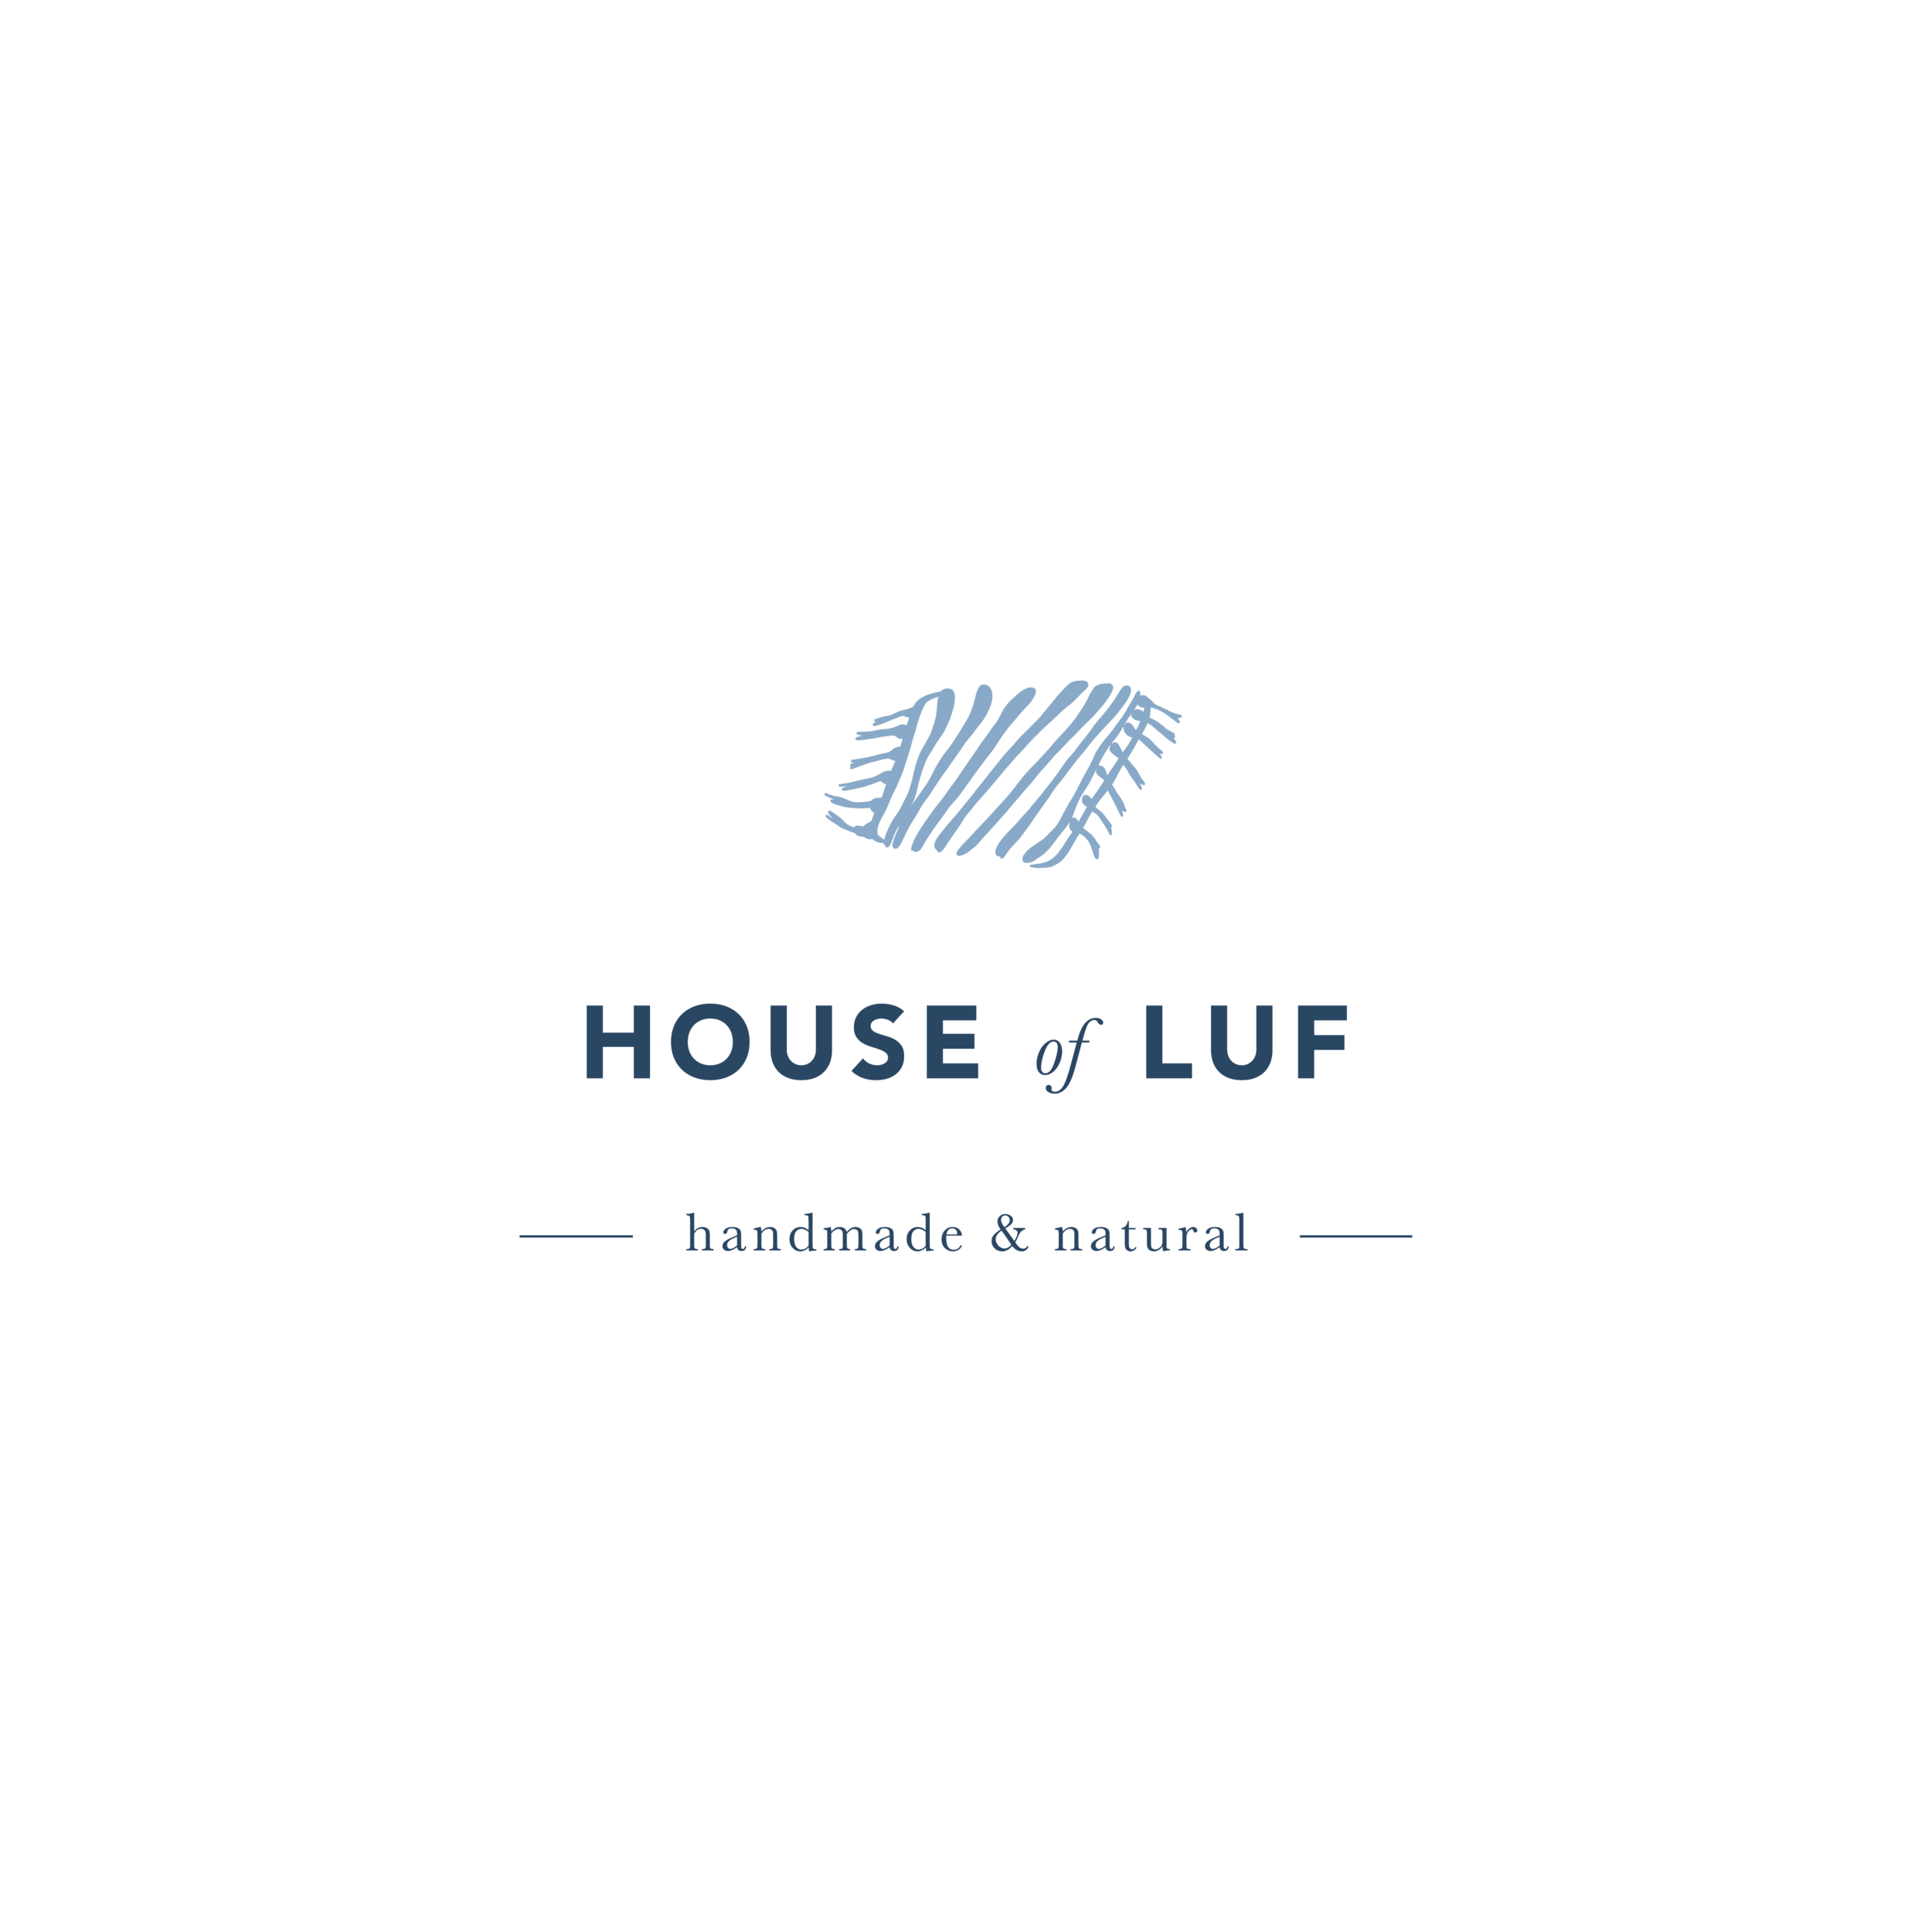 House of Luf logo